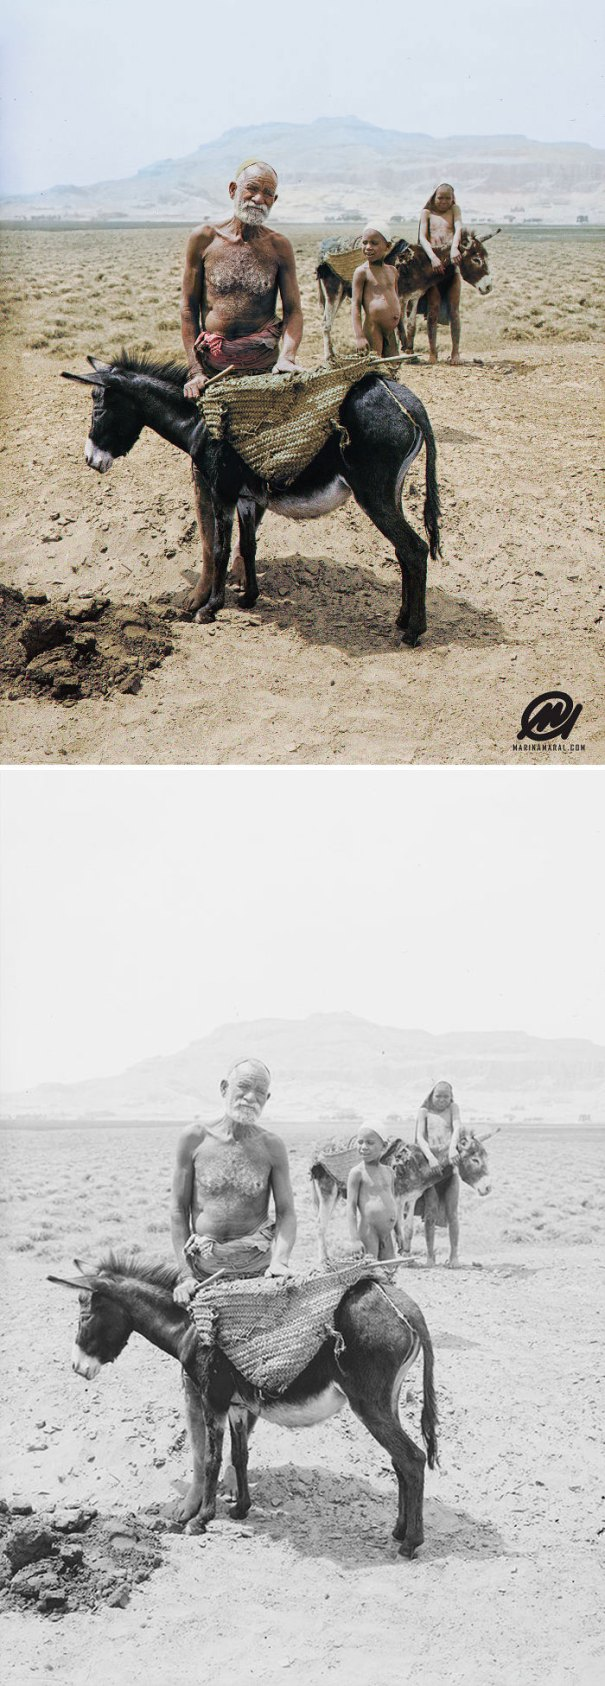 5b6d3b815bc85-colorized-historic-photos-marina-amaral-115-5b6c37bf86814__700 This Artist Colorizes Old Black & White Photos, And They Will Change The Way People Imagine History Photography Random